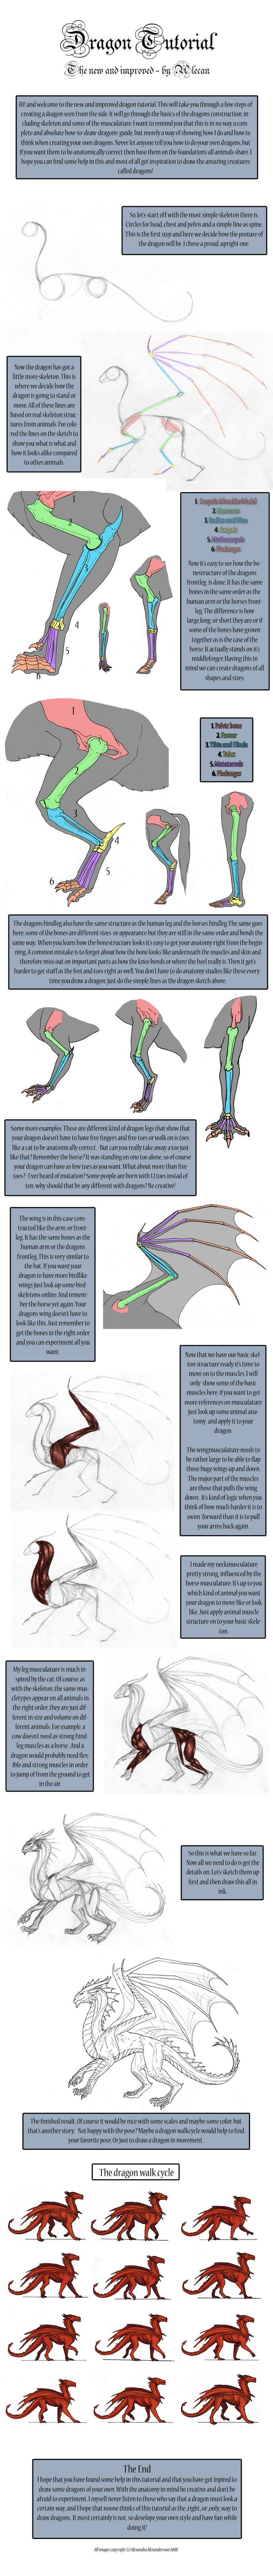 Dragon Tutorial - New by *alecan on deviantART || CHARACTER DESIGN REFERENCES | Find more at https://www.facebook.com/CharacterDesignReferences if you're looking for: #art #character #design #model #sheet #illustration #best #concept #animation #drawing #archive #library #reference #anatomy #traditional #draw #development #artist #how #to #tutorial #conceptart #modelsheet #dragon #dragons